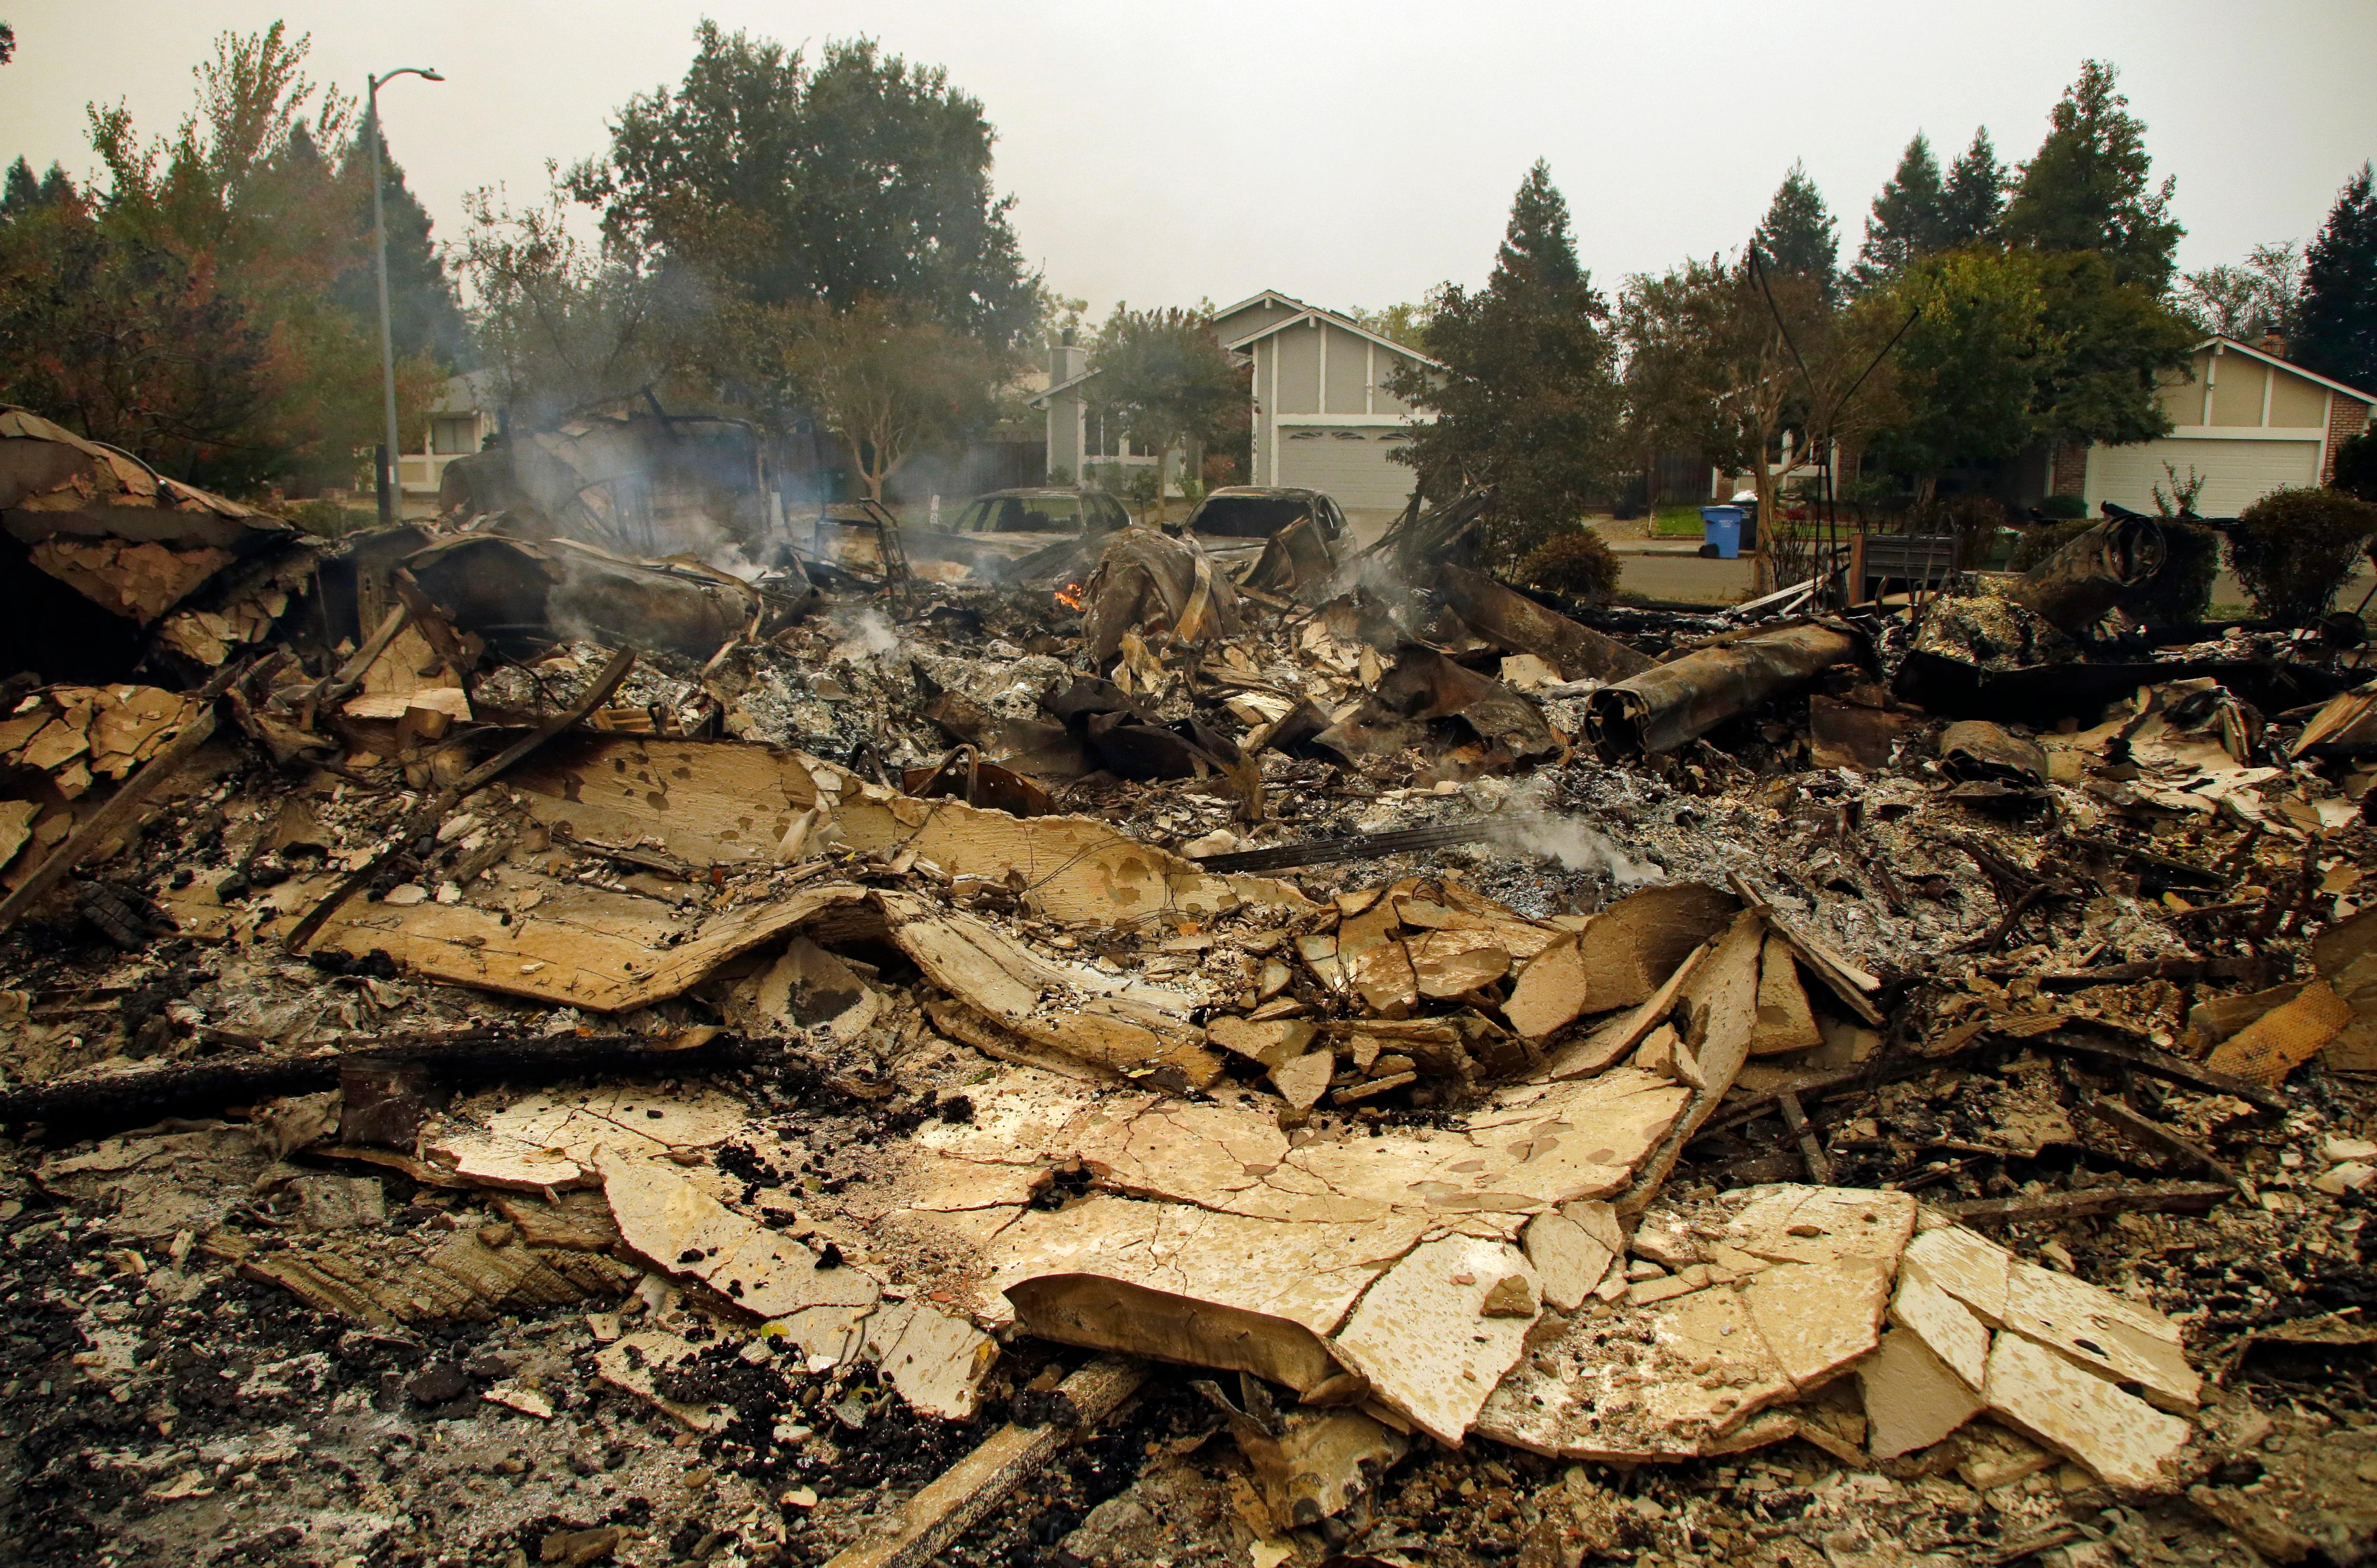 Smoke raises from the remains of homes across the street from houses unscathed on Tuesday, Oct. 10, 2017, in the Coffey Park area of Santa Rosa, Calif. An onslaught of wildfires across a wide swath of Northern California broke out almost simultaneously then grew exponentially, swallowing up properties from wineries to trailer parks and tearing through both tiny rural towns and urban subdivisions. (AP Photo/Ben Margot)